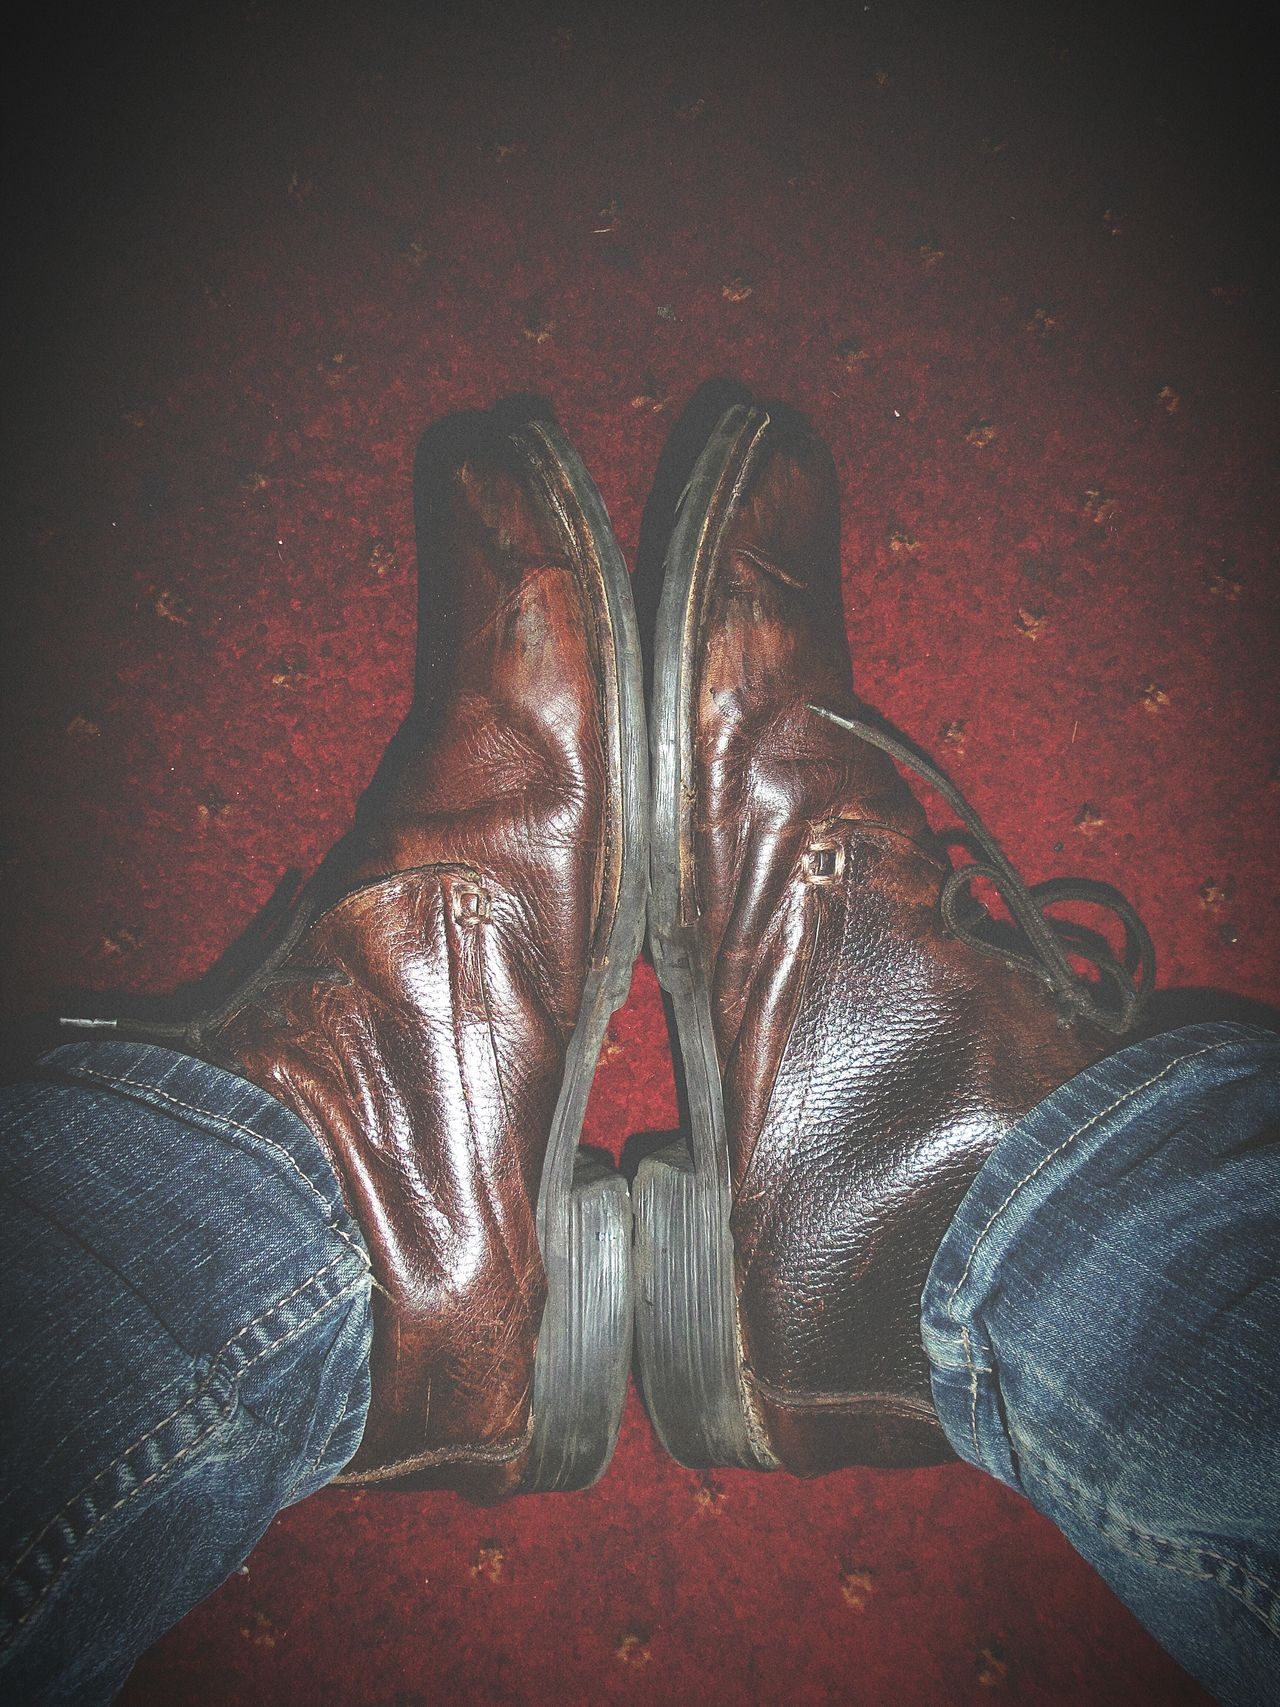 Boots Blue Jeans Feet Brown Leather Shoes Creative Light And Shadow Shadows & Lights Lookingdown EyeEm Best Shots Together